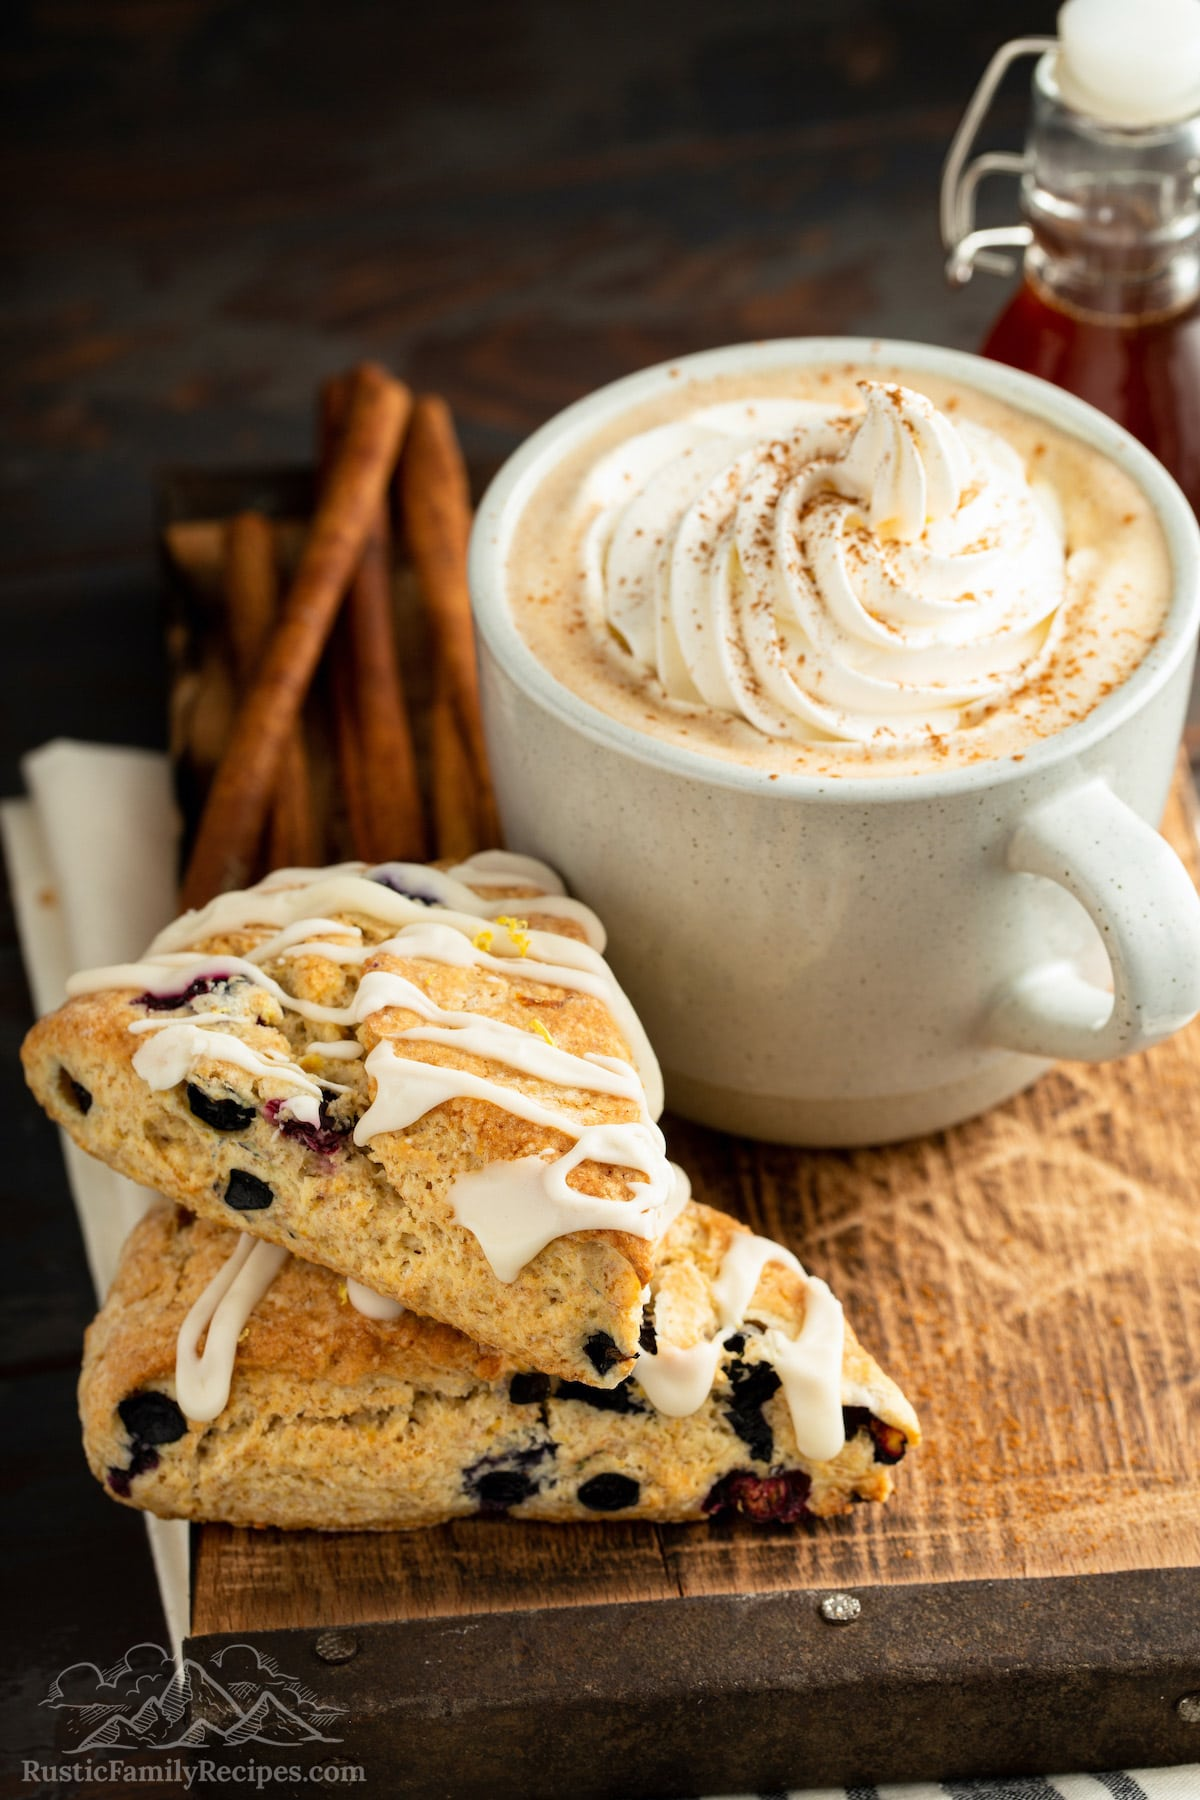 Two glazed blueberry scones stacked next to a Gingerbread Latte.